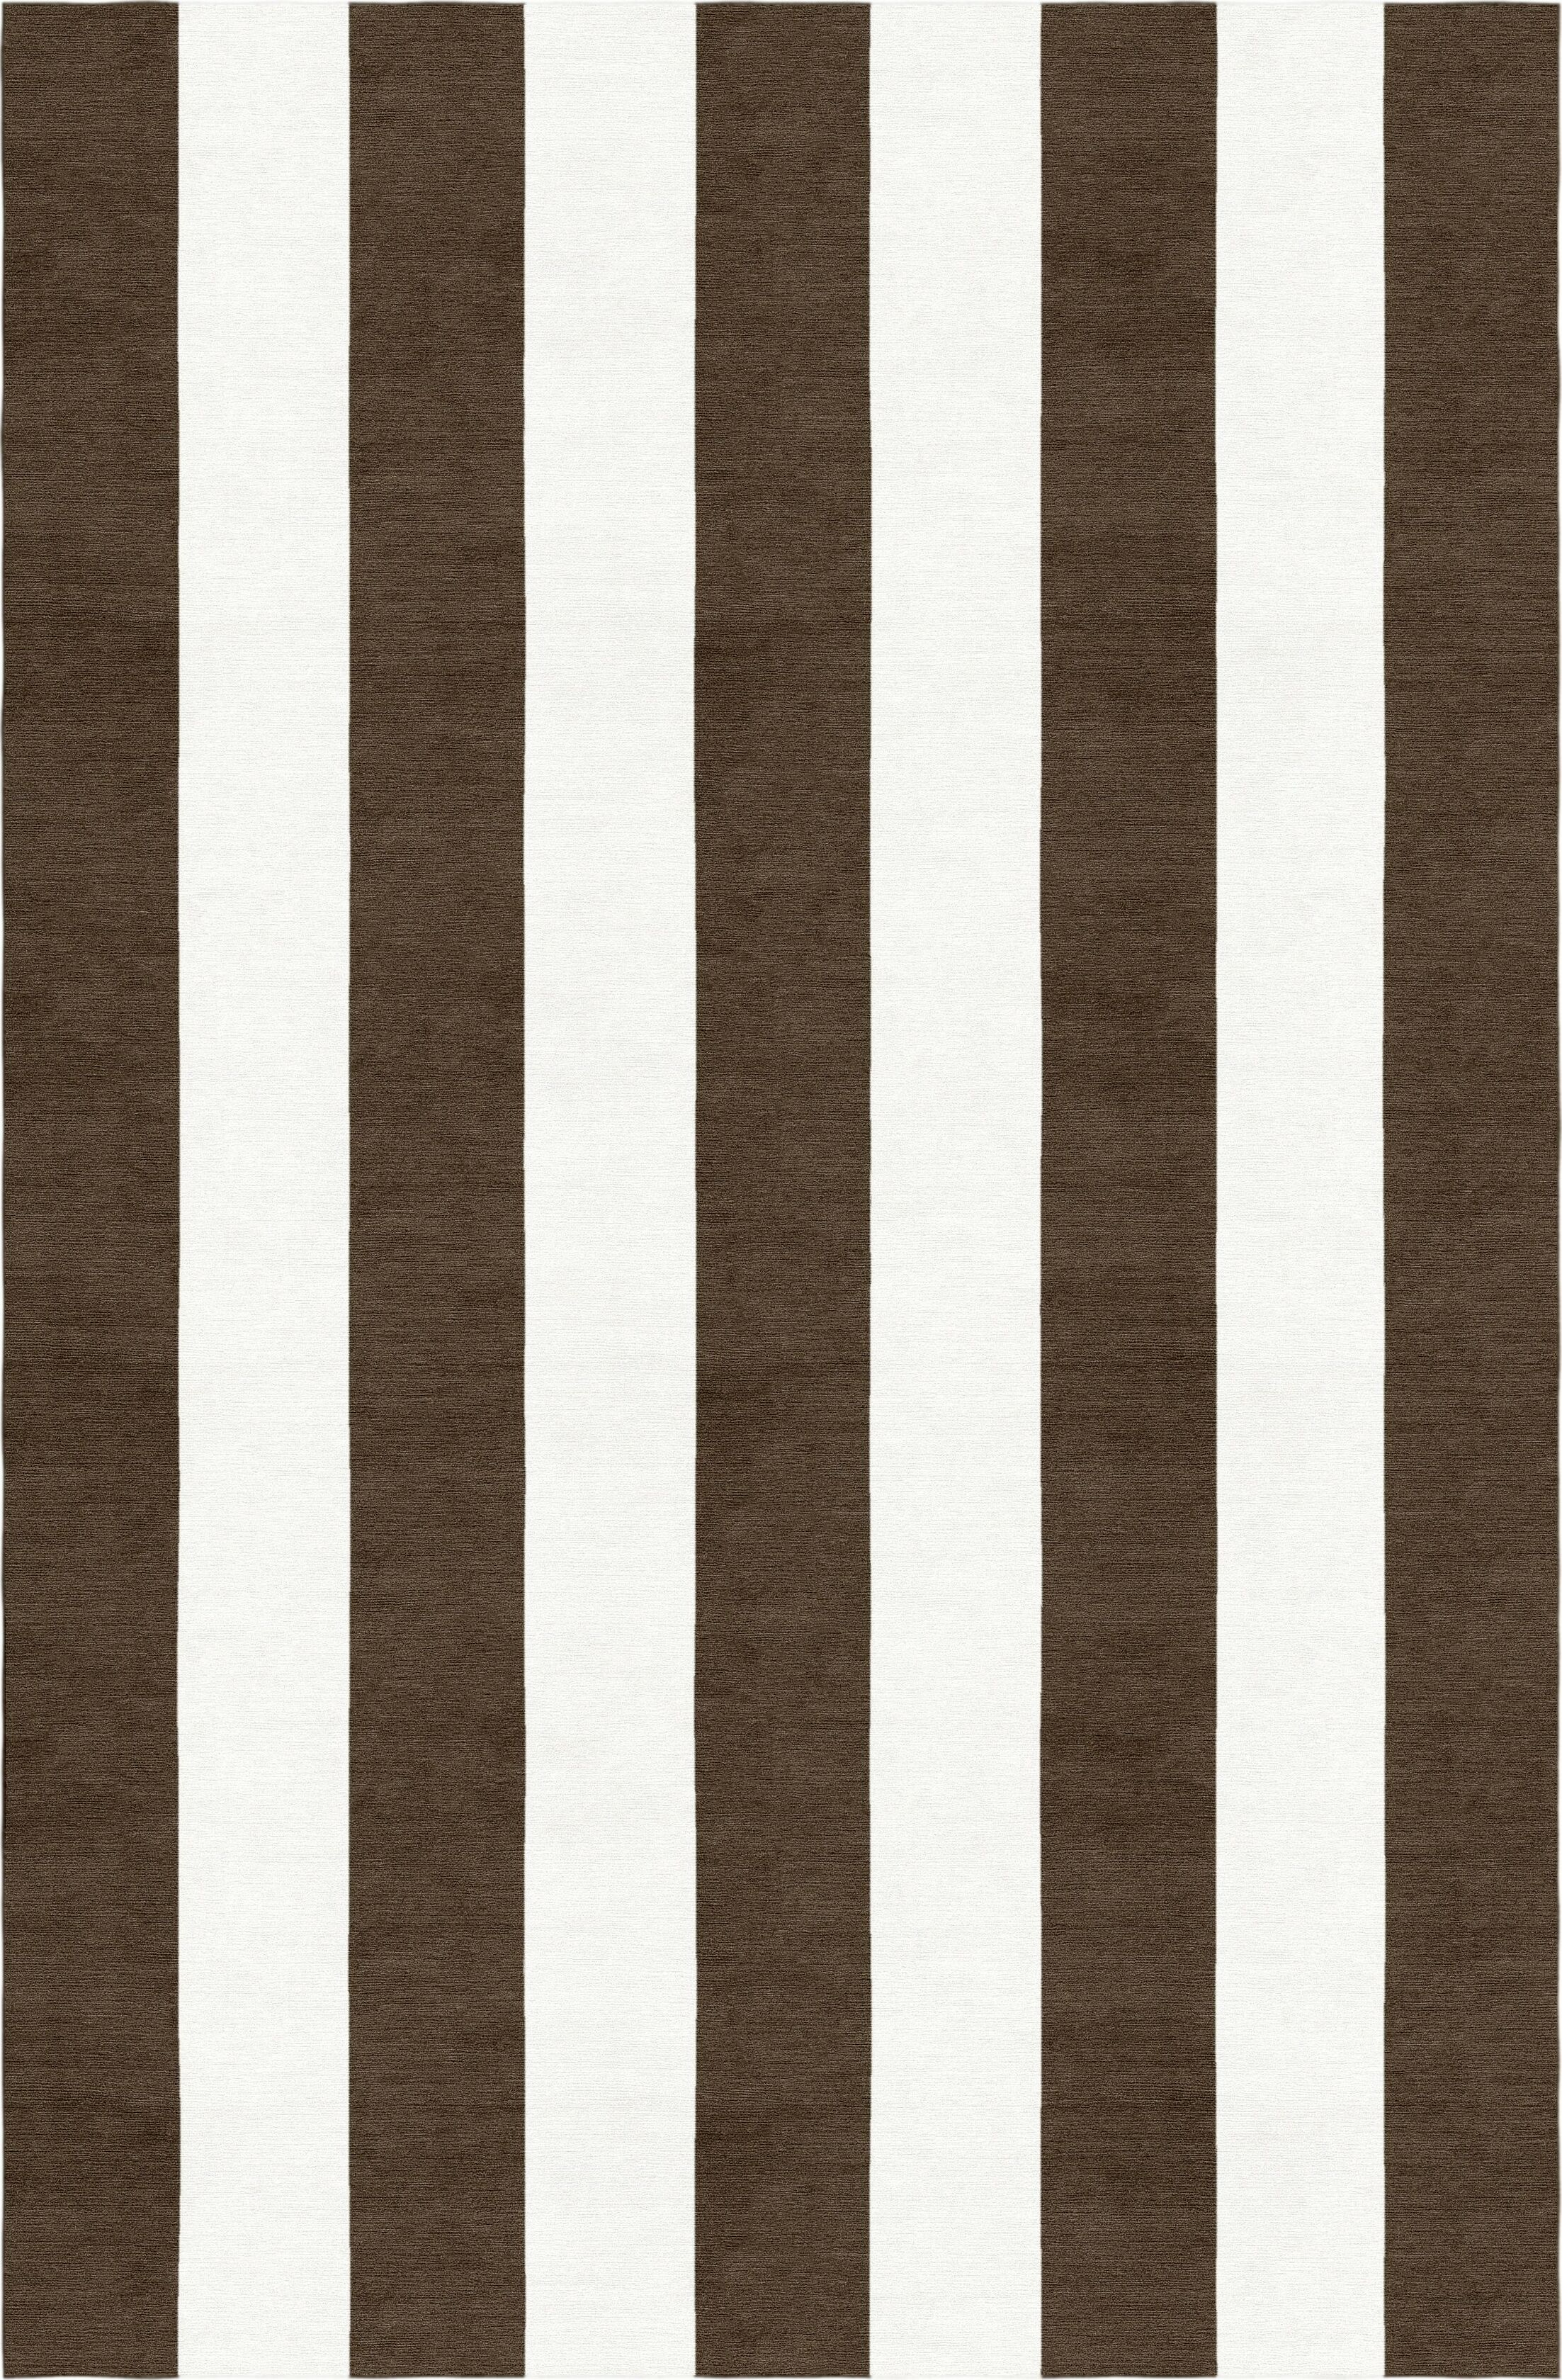 Mackelprang Stripe Hand-Woven Wool Brown/White Area Rug Rug Size: Rectangle 6' x 9'